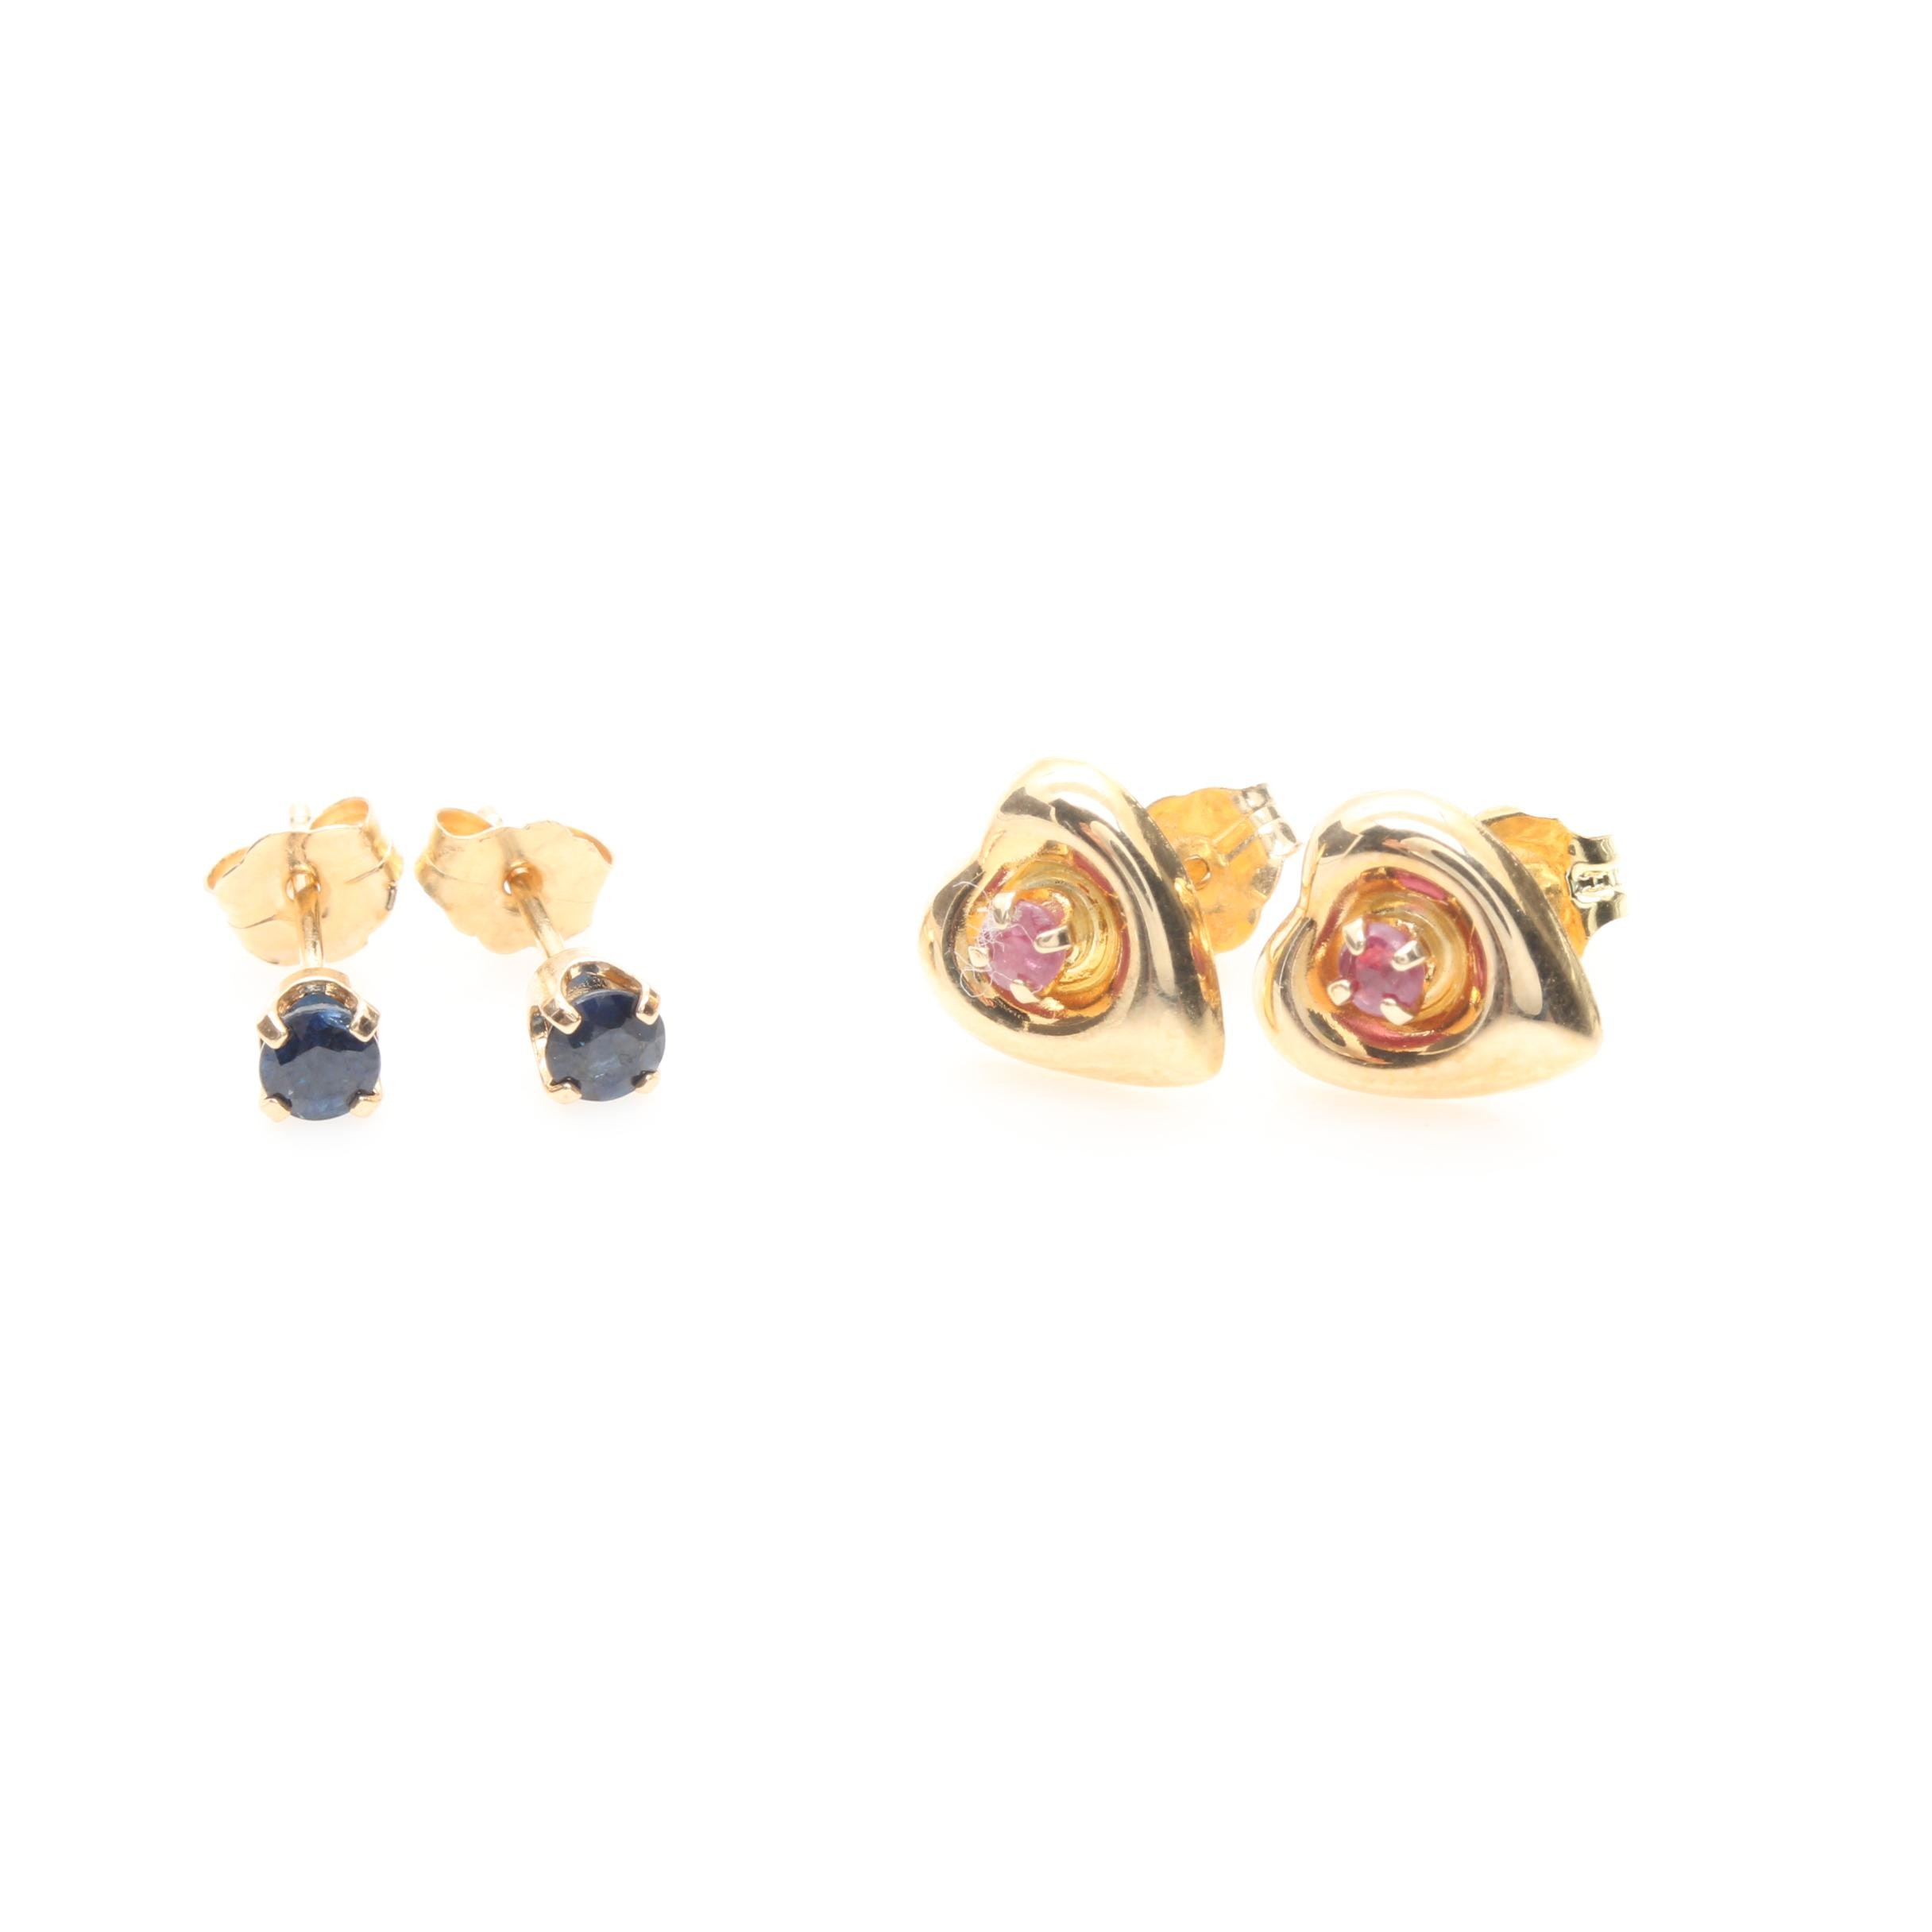 14K Yellow Gold Ruby and Sapphire Earring Selection